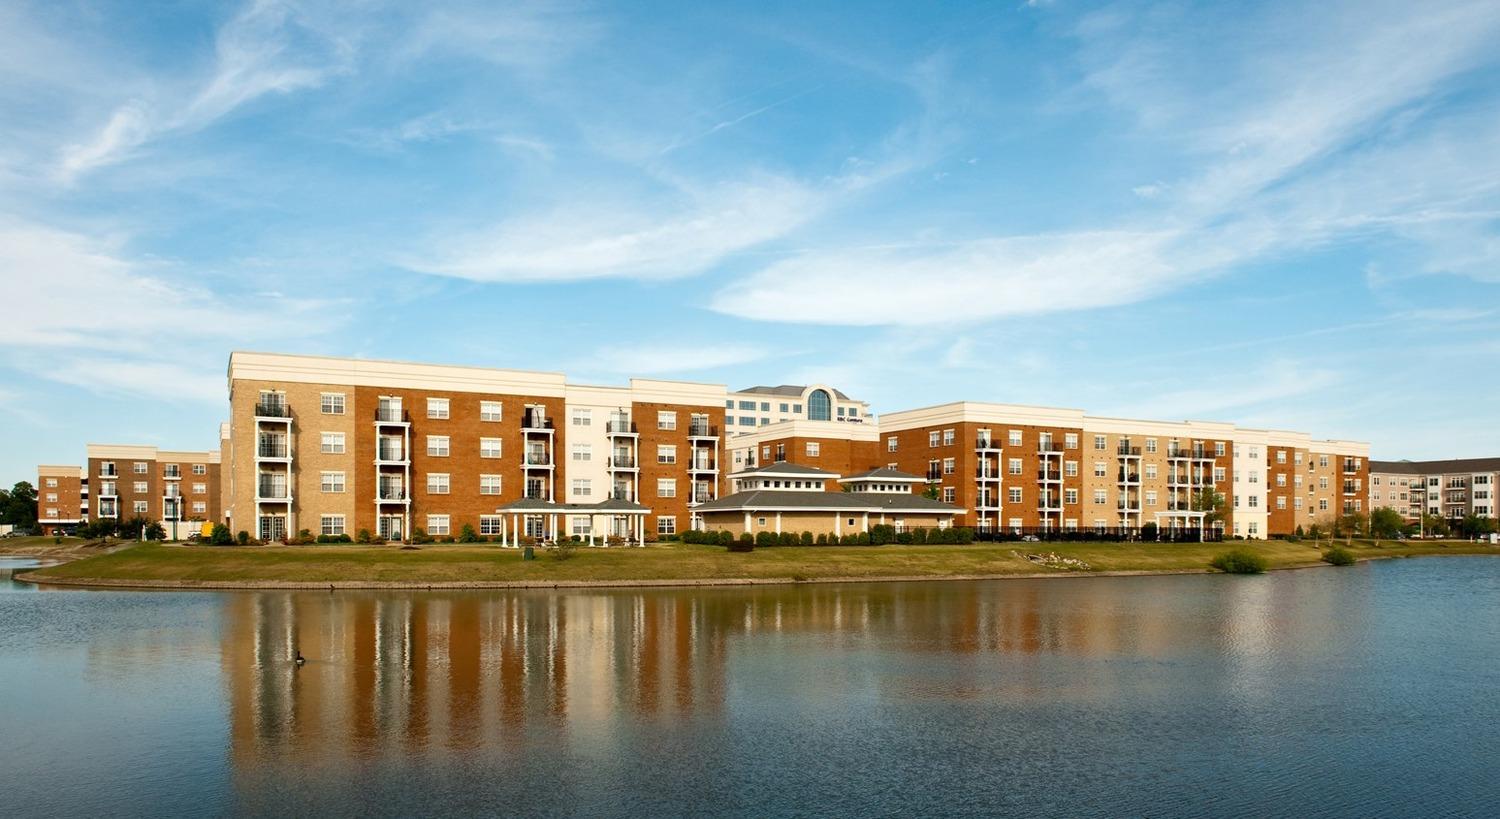 CBG builds Park Place at Oyster Point Town Center, a 175 Luxury Apartments in Newport News, VA